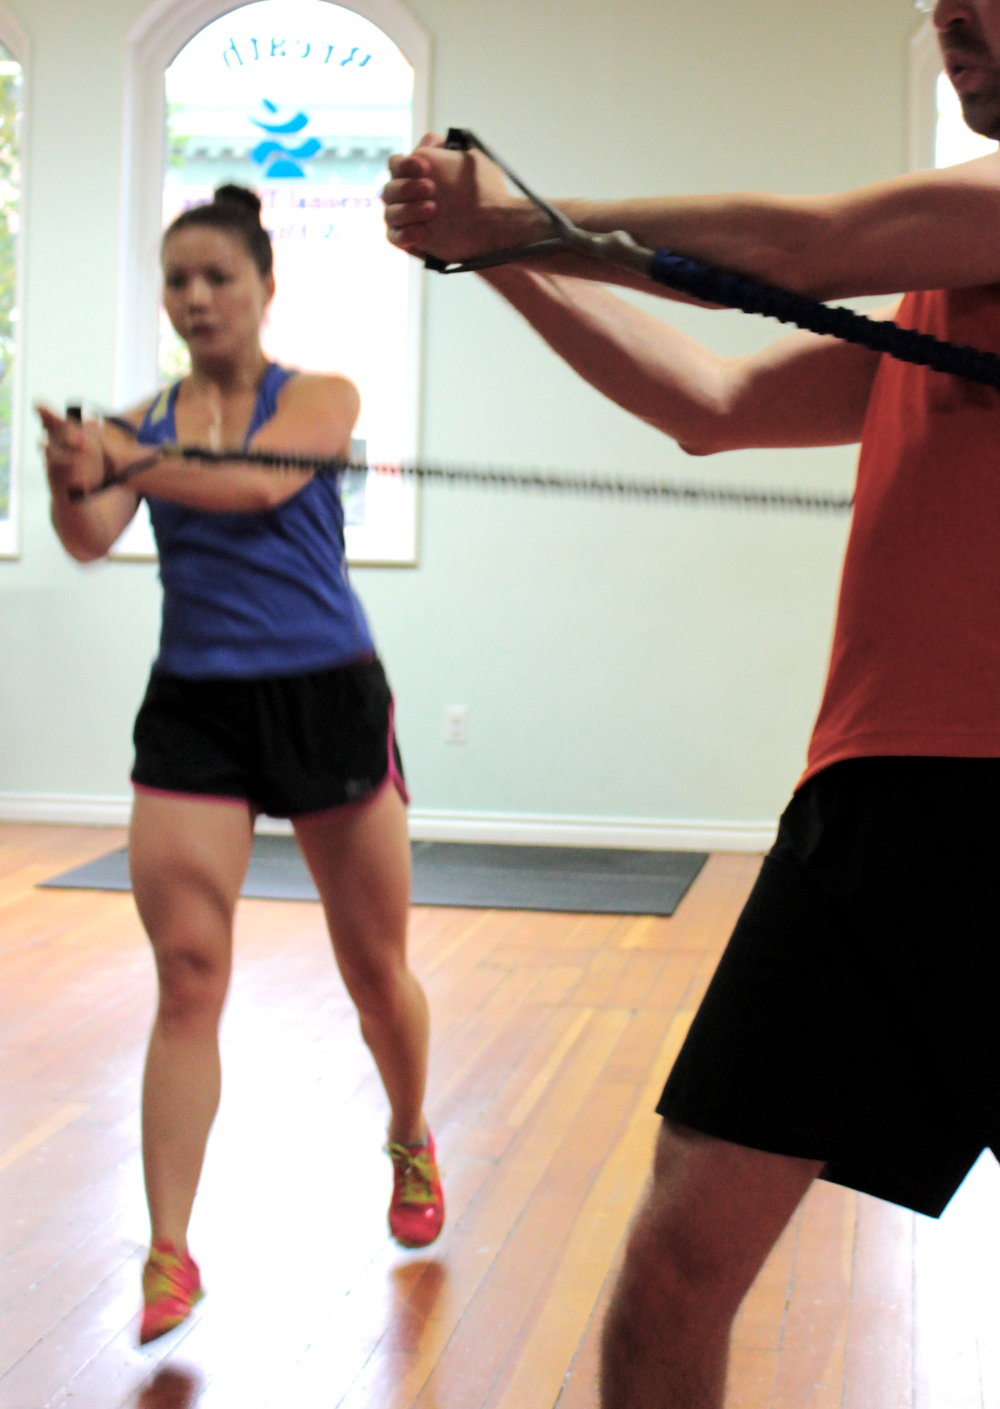 Partner Personal Training at Breathe Fitness on Whyte in YEG